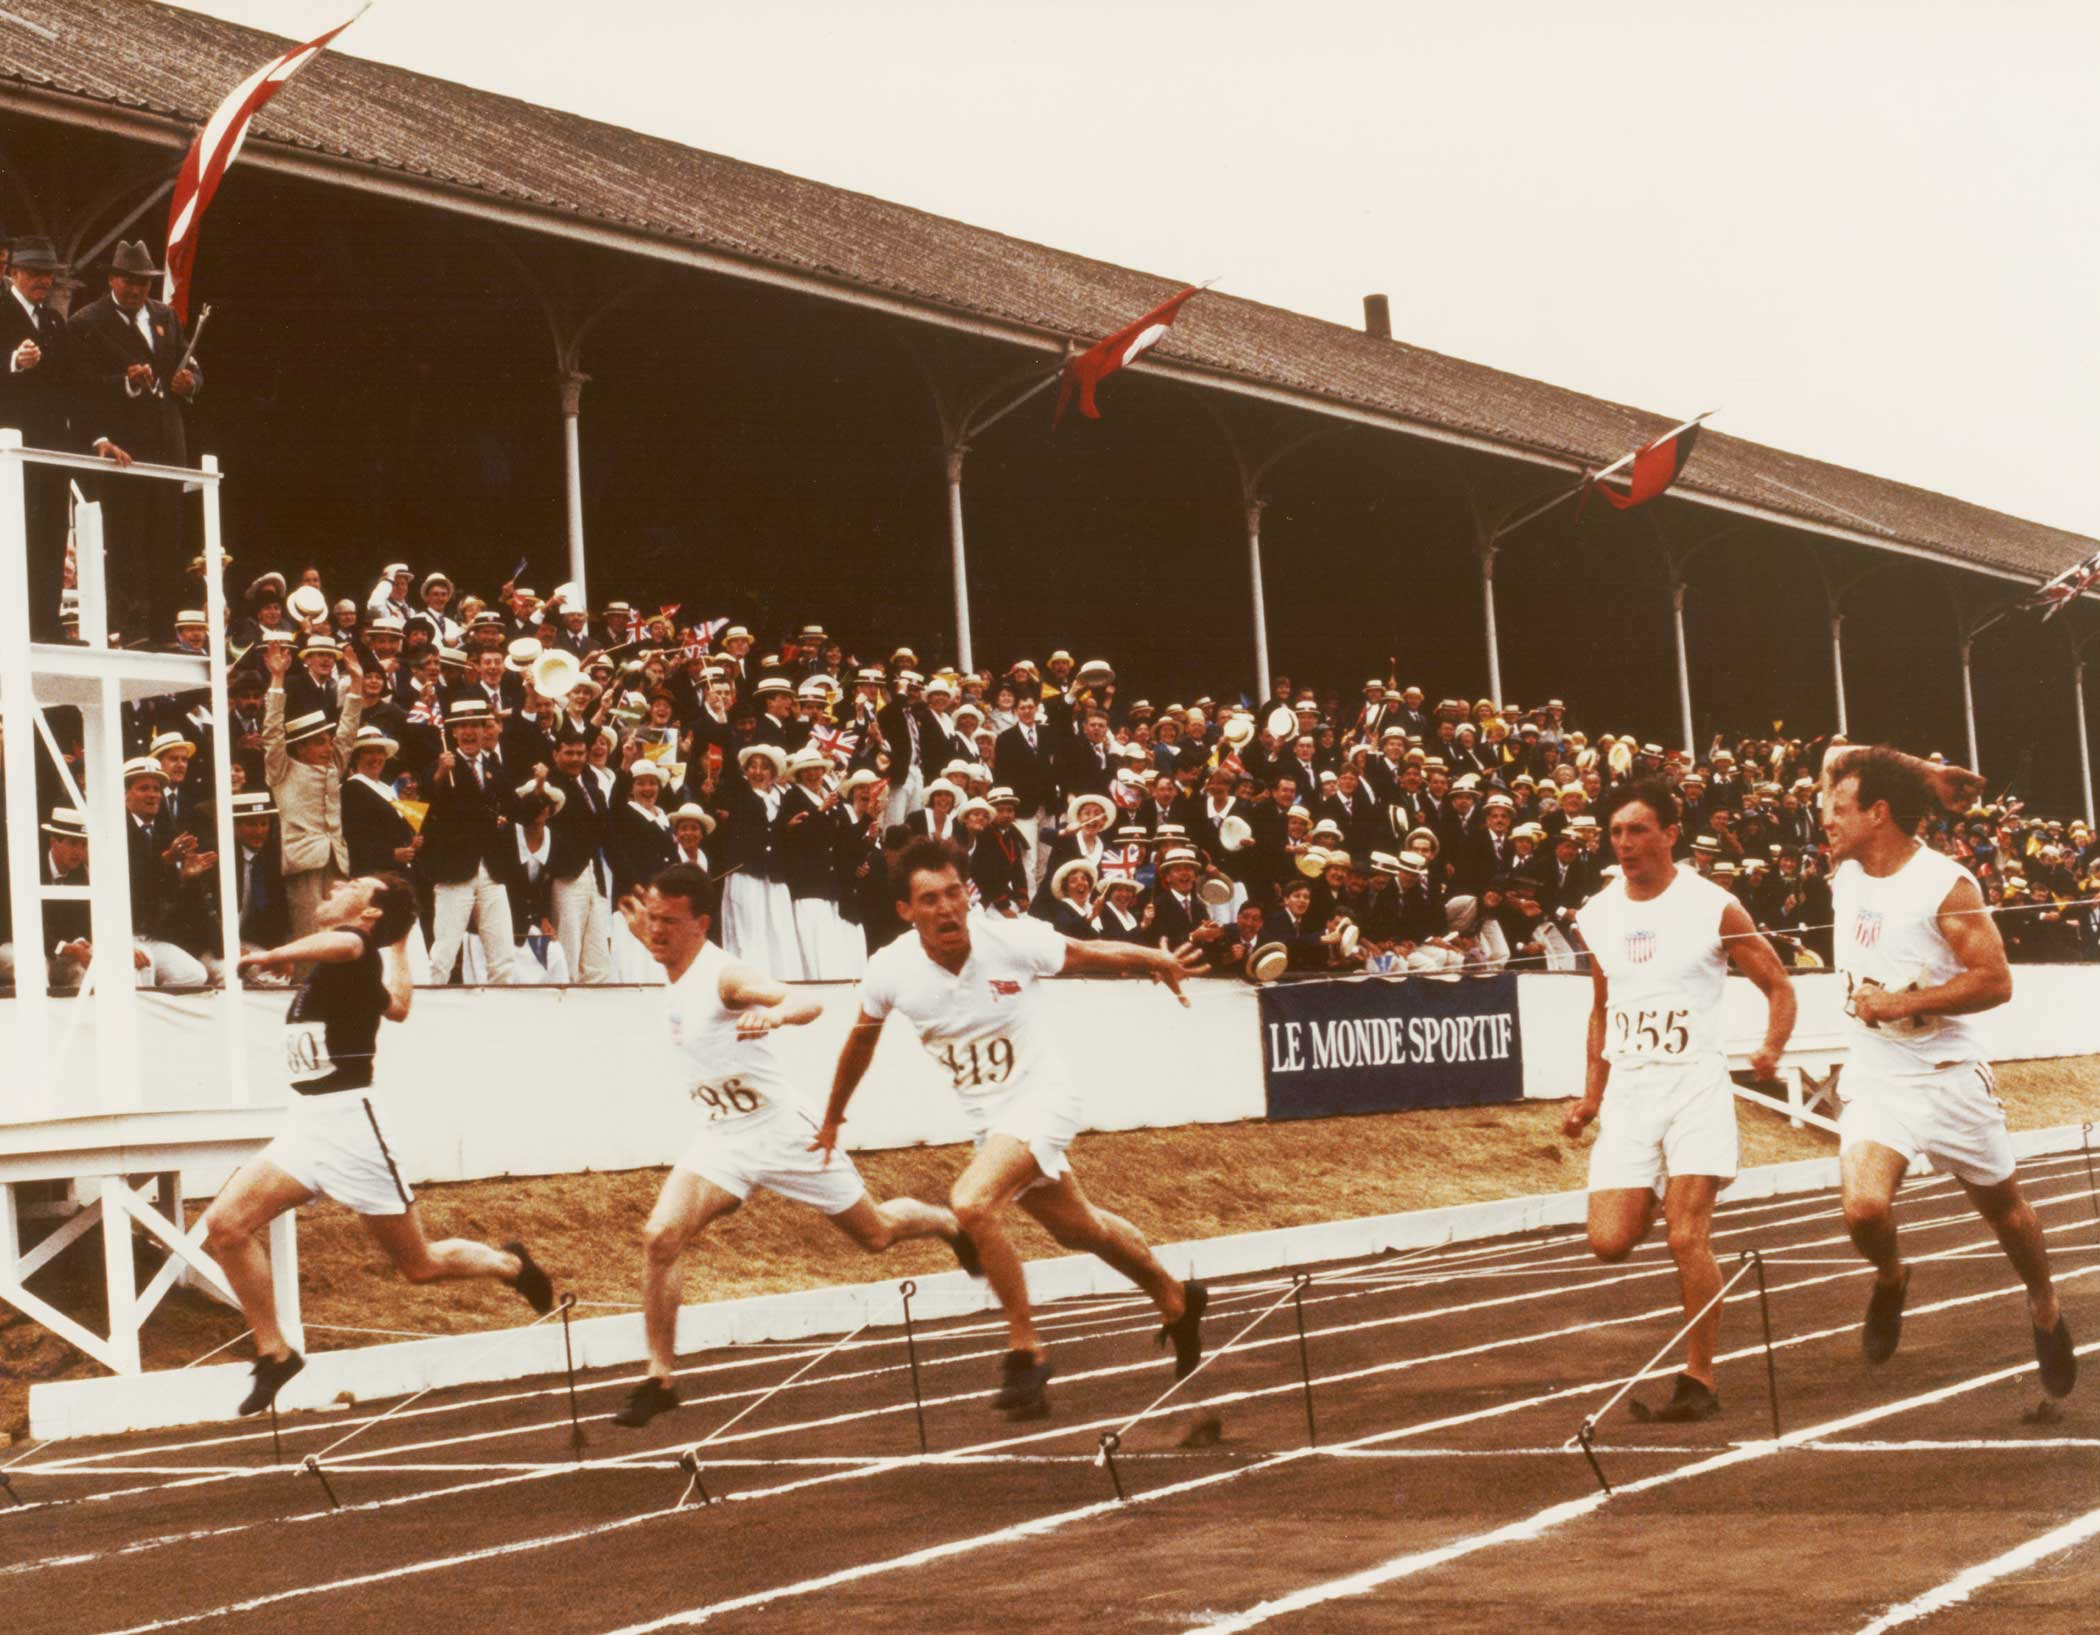 Chariots of Fire, 1981